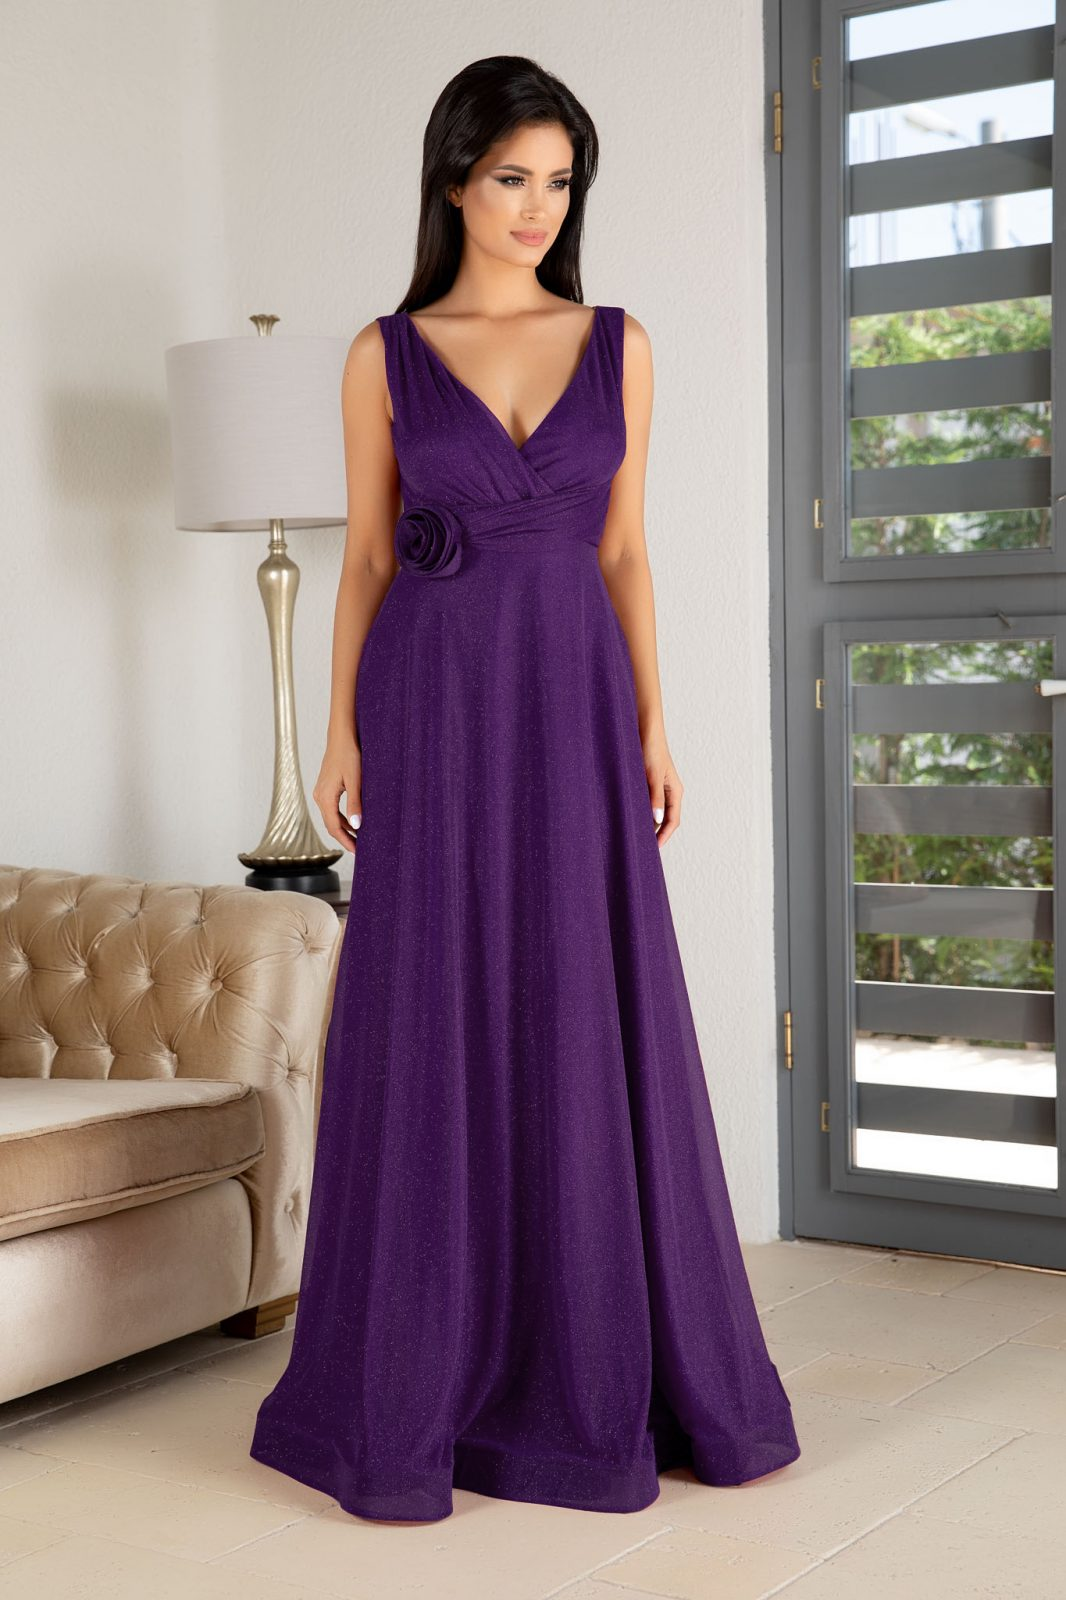 La Donna Catalyna Purple Dress